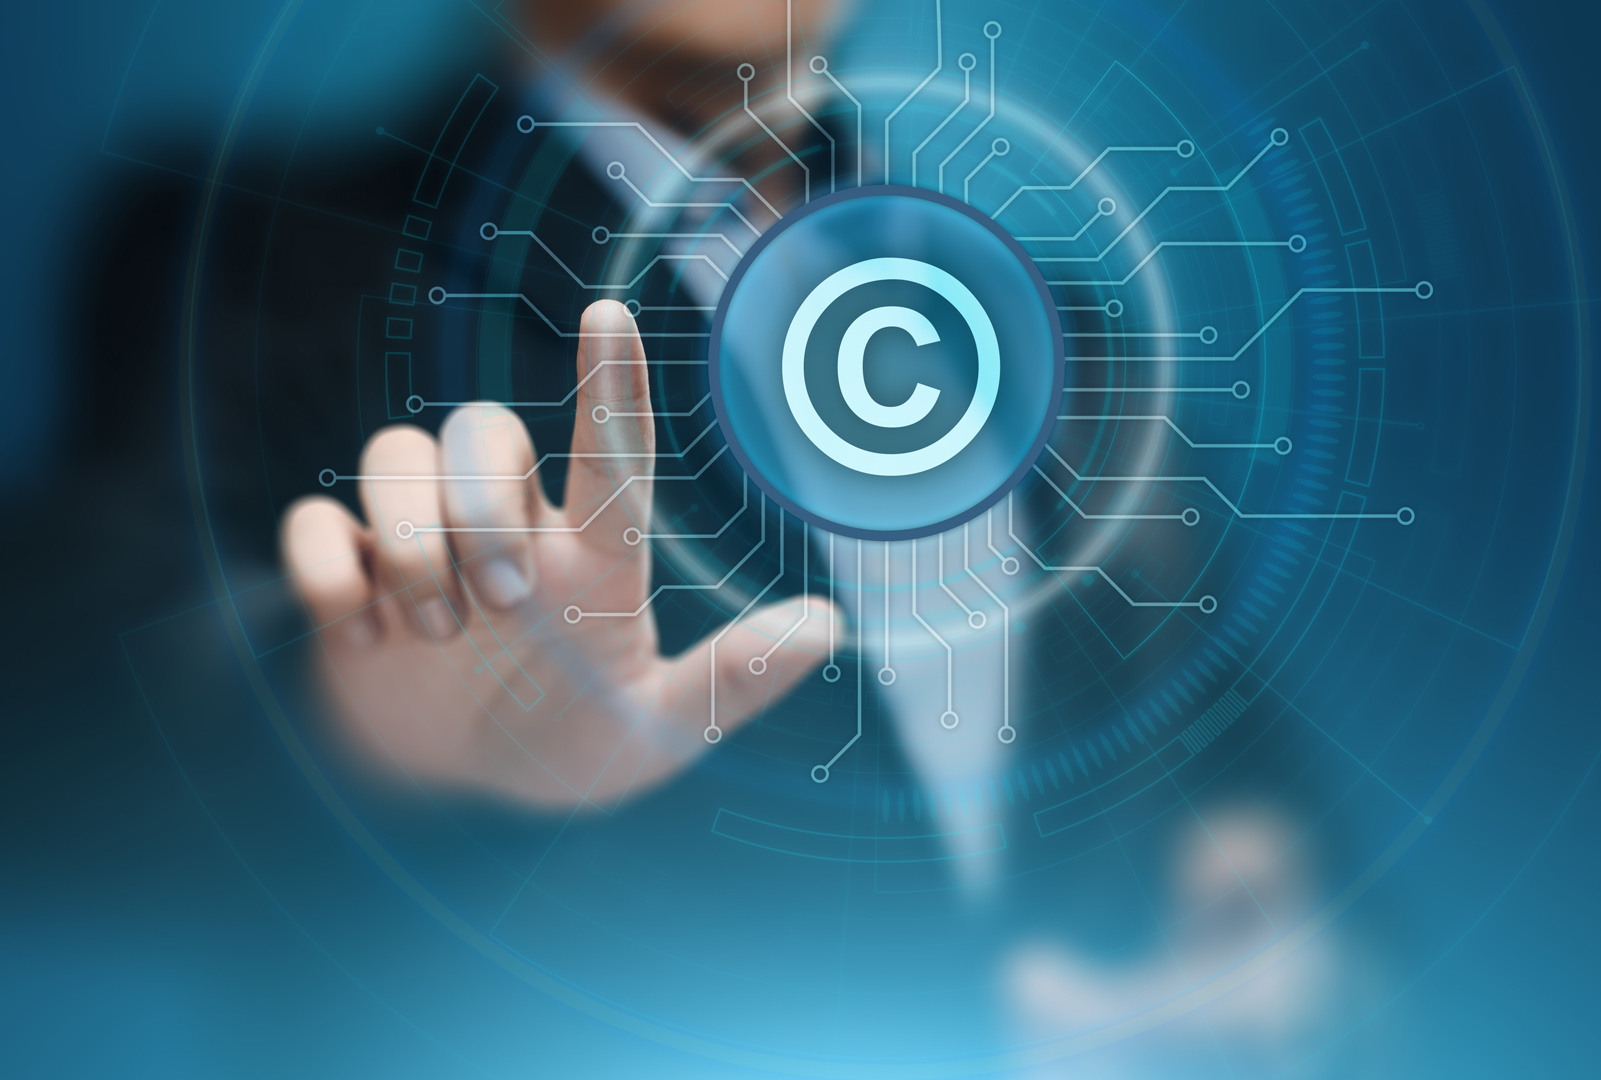 European Parliament approves new copyright changes which could lead to upload filters